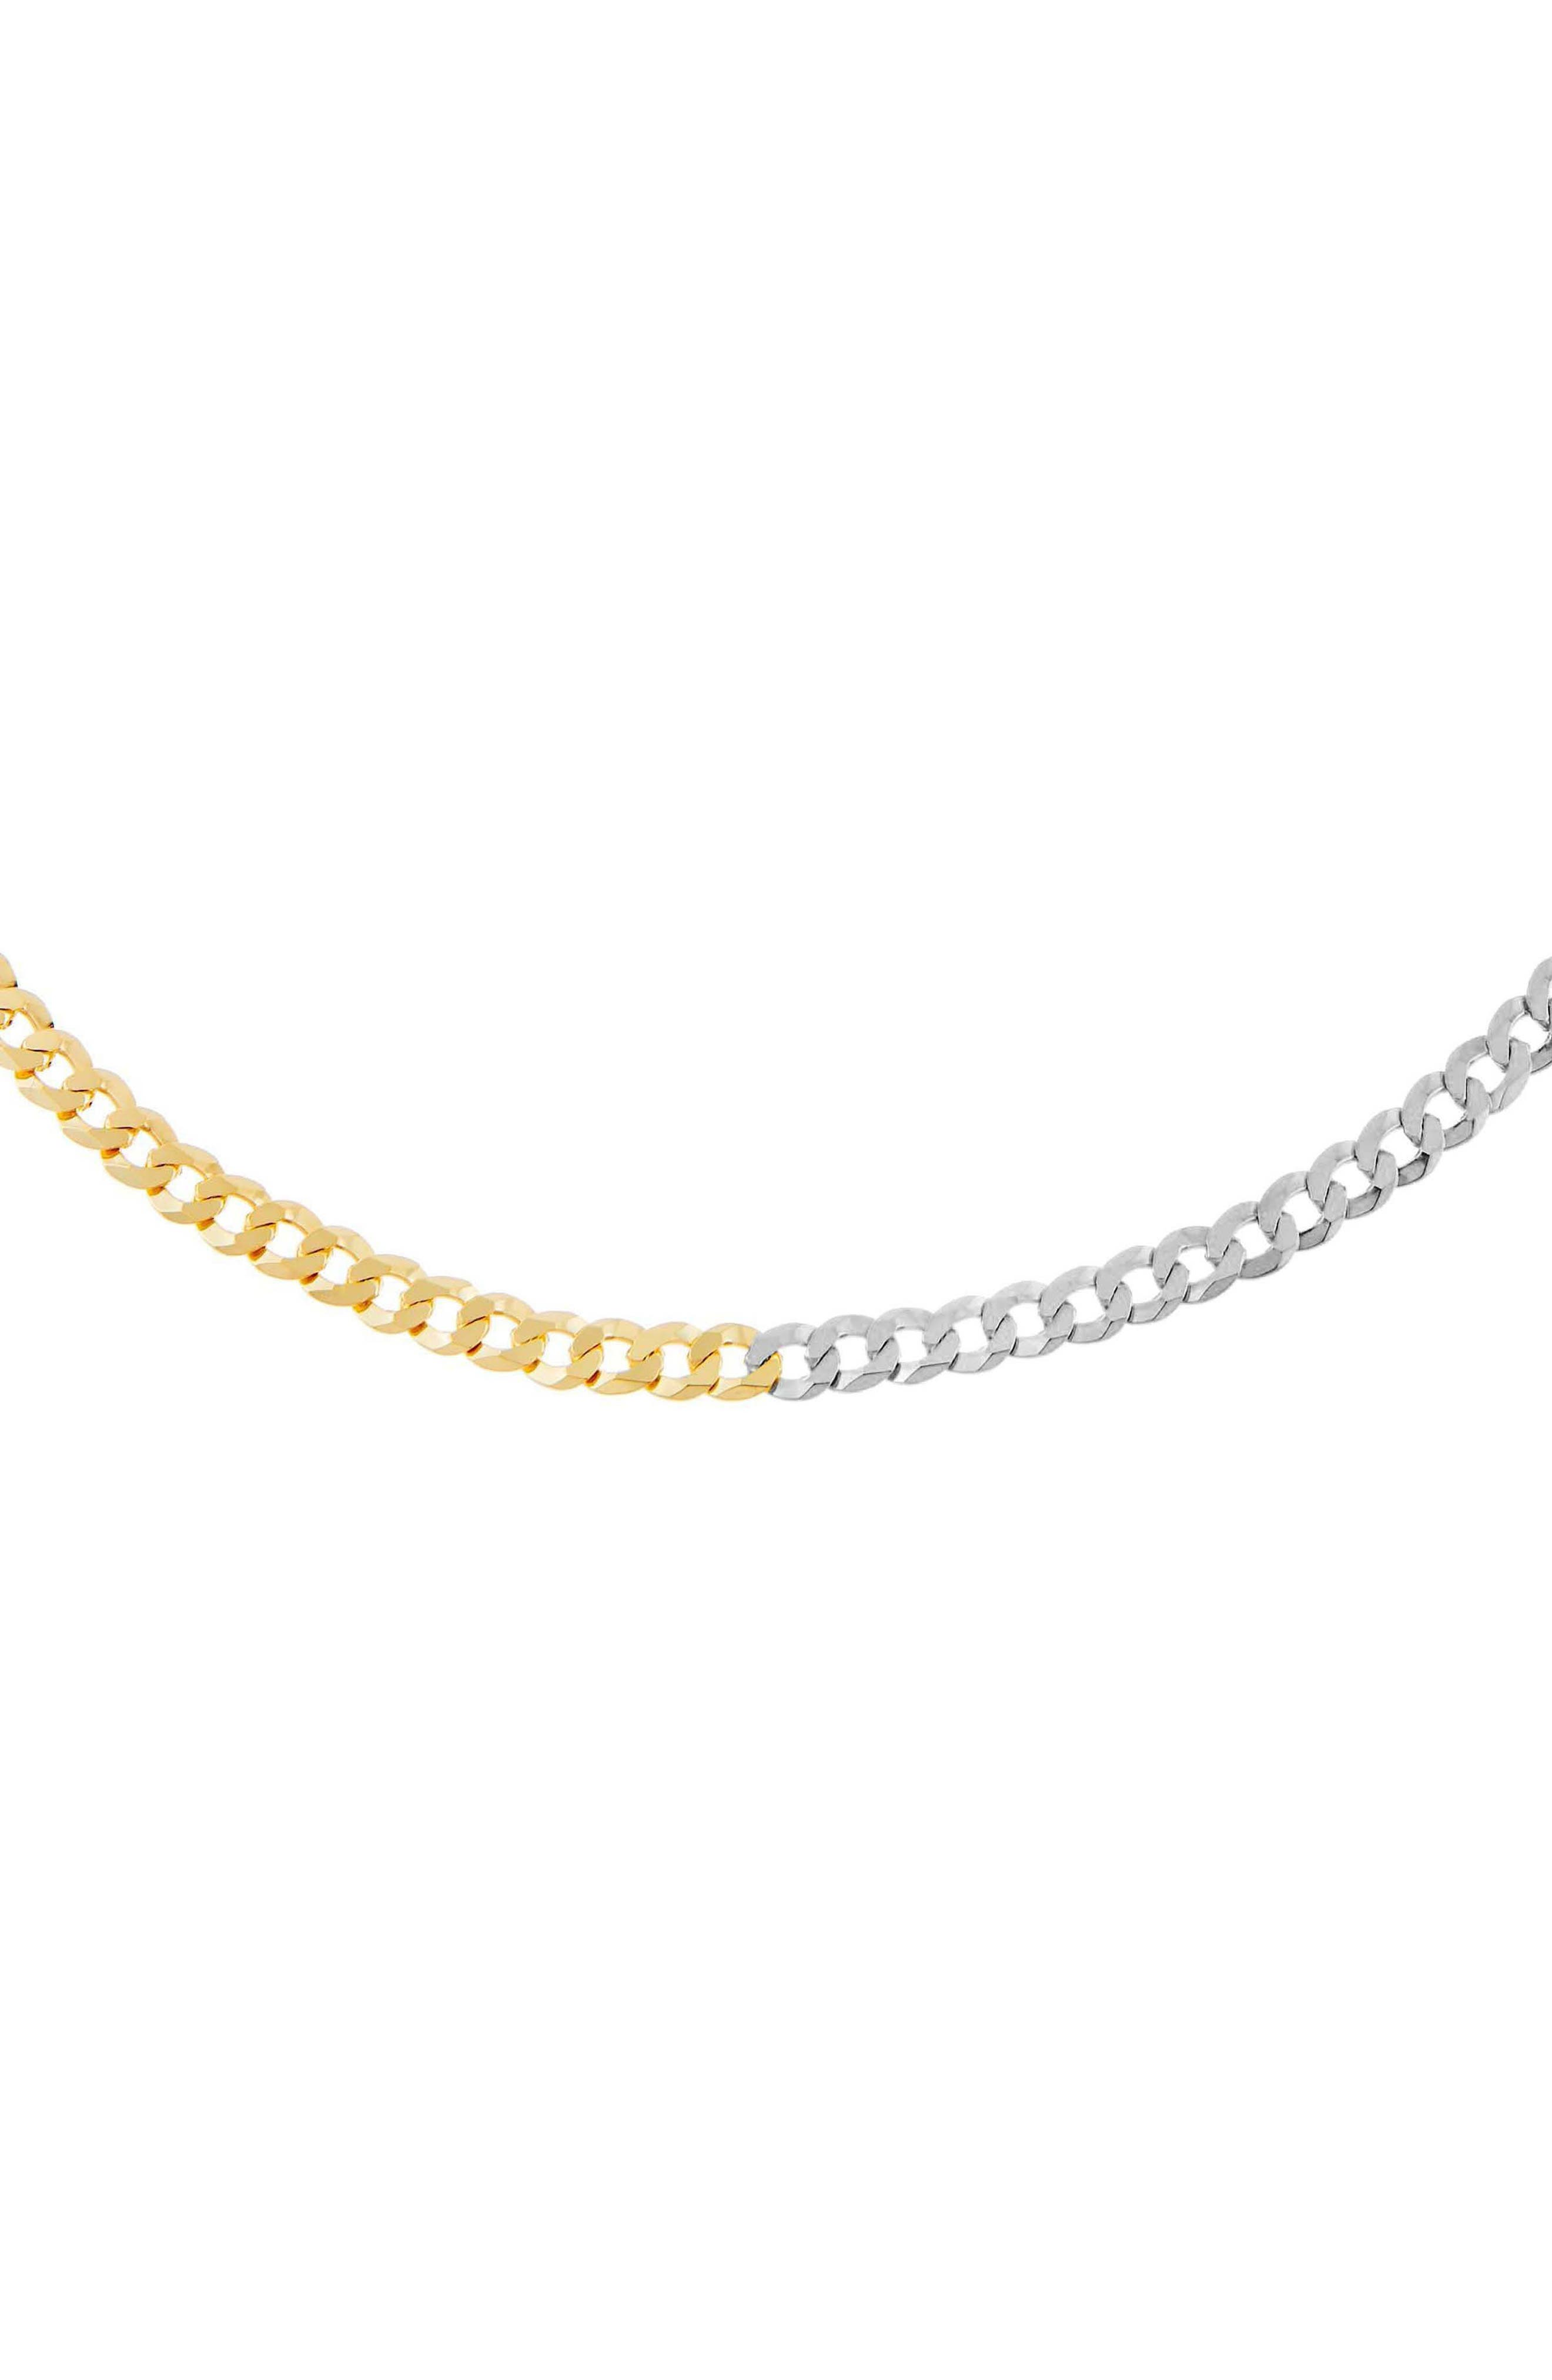 Women's Adina's Jewels Two-Tone Flat Curb Chain Necklace